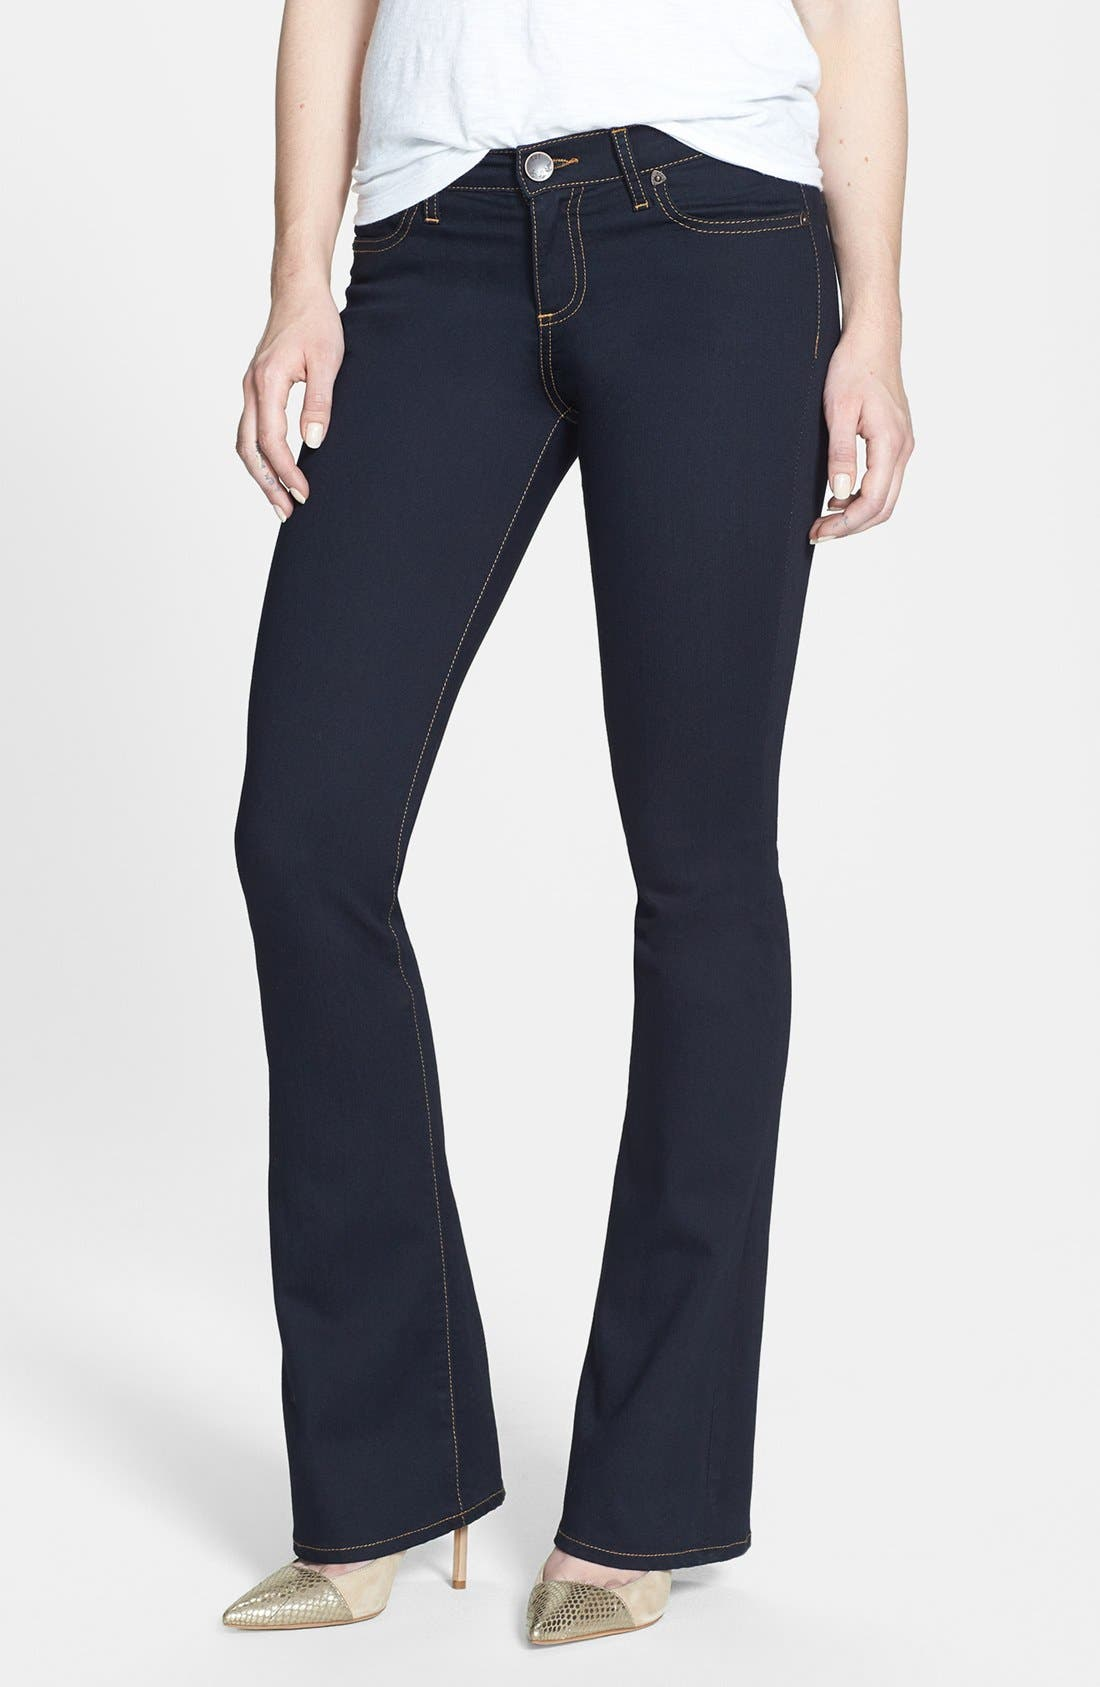 Main Image - KUT from the Kloth 'Michelle' Stretch Slim Bootcut Jeans